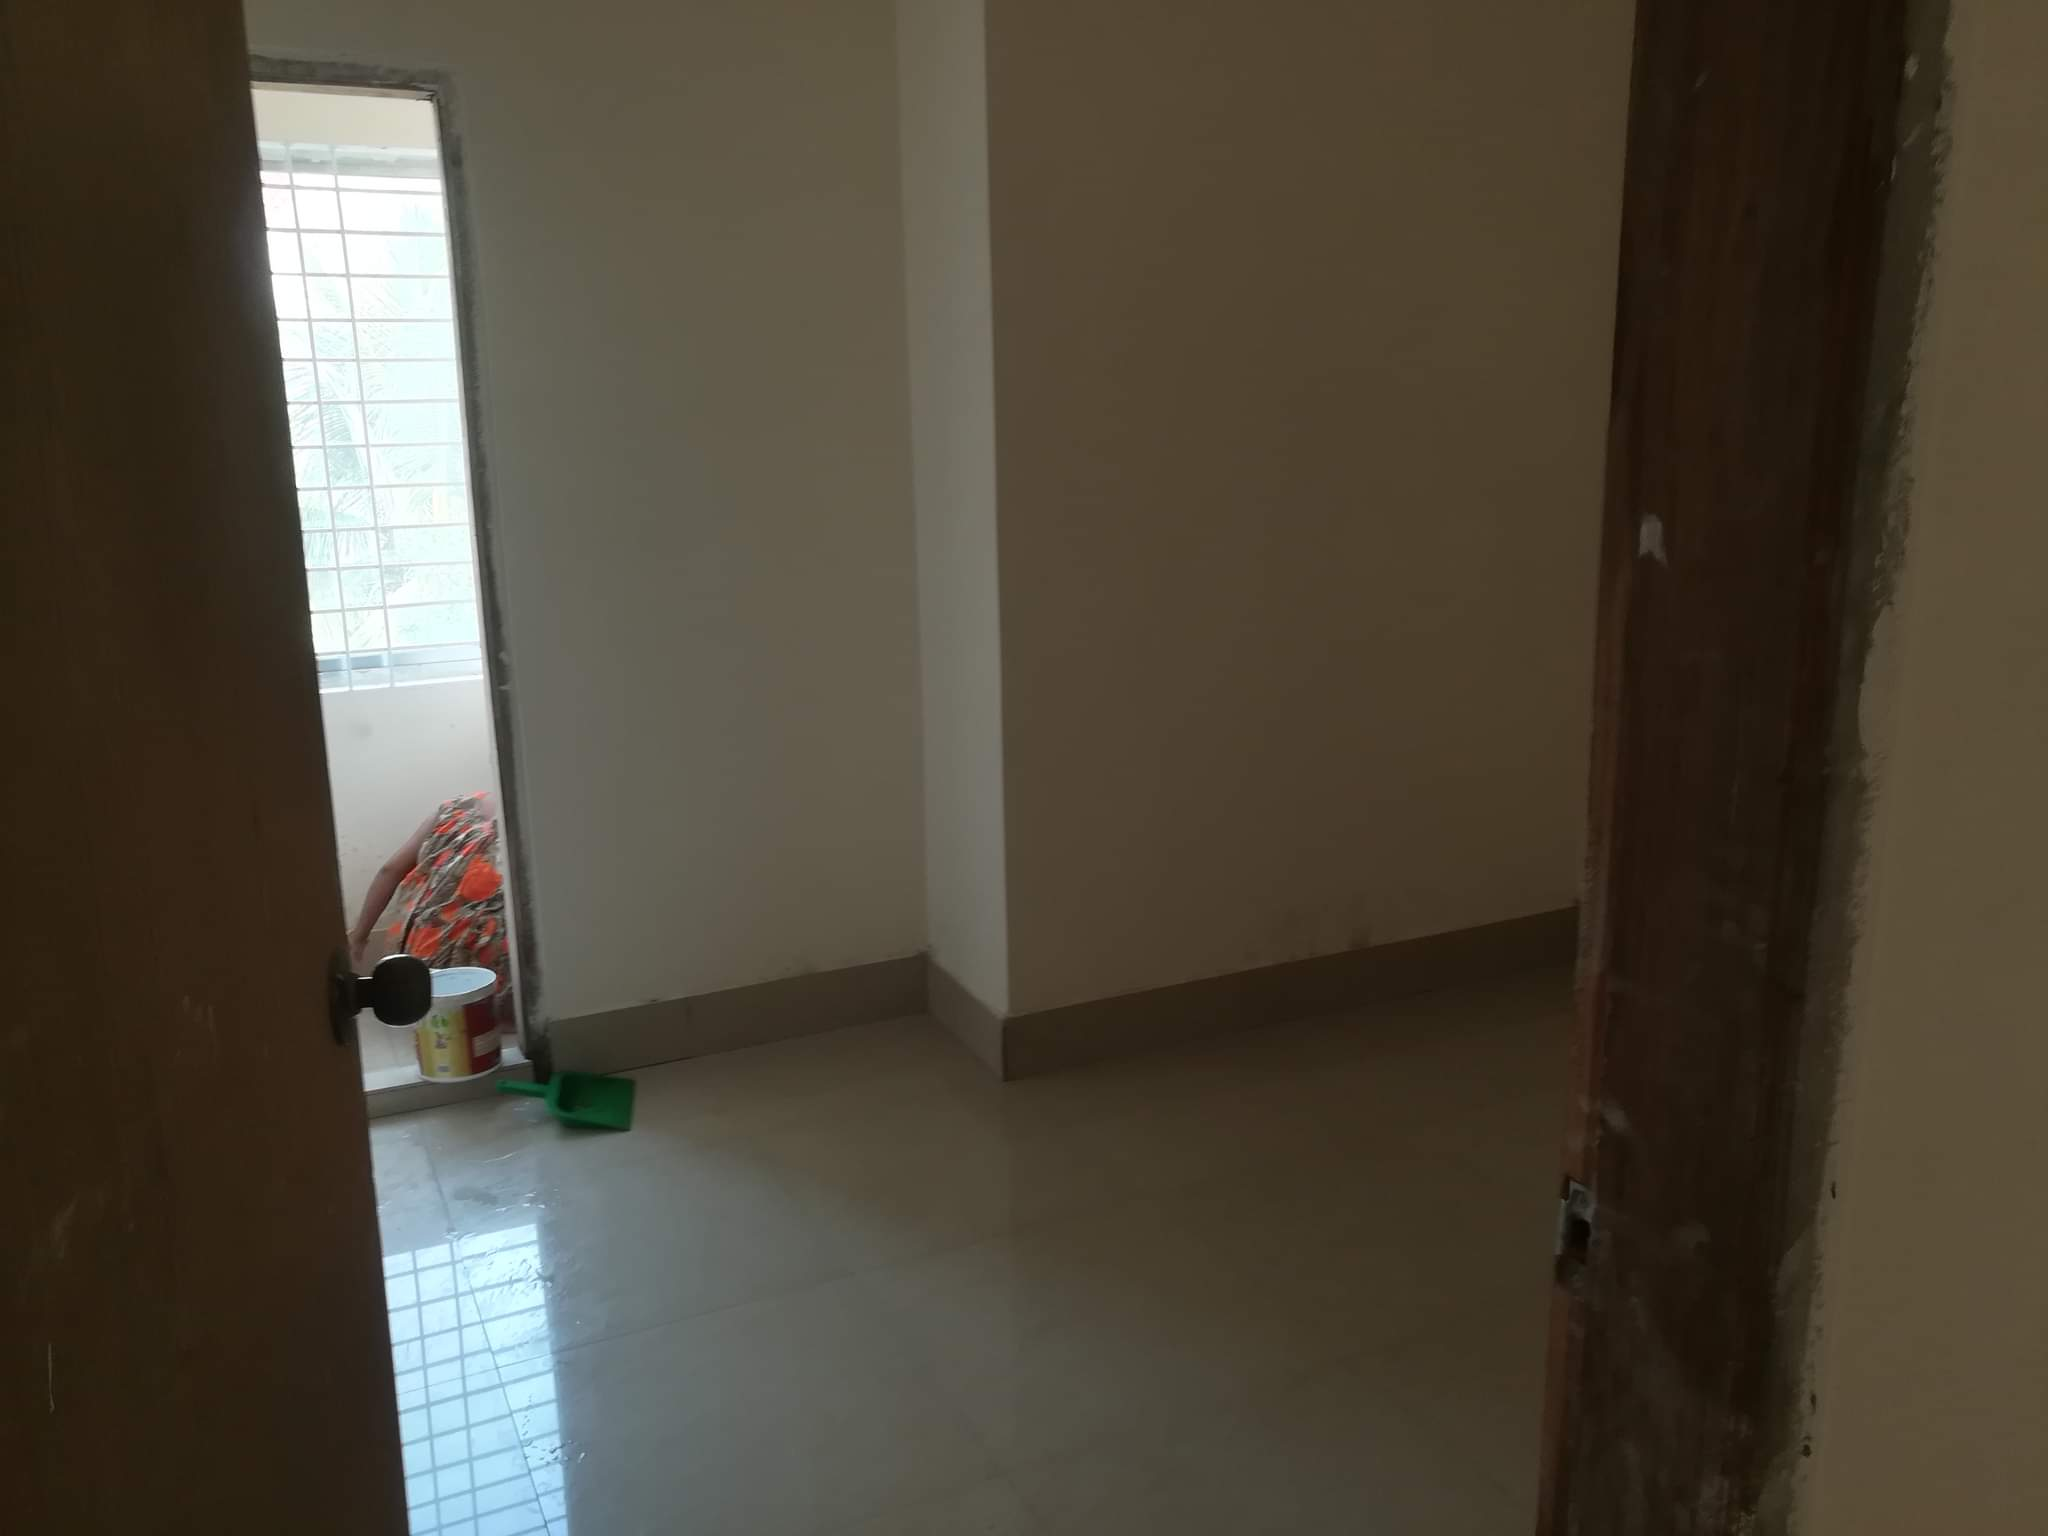 1077-sft-apartment-for-sale-in-khilgaon-5th-floor-649361